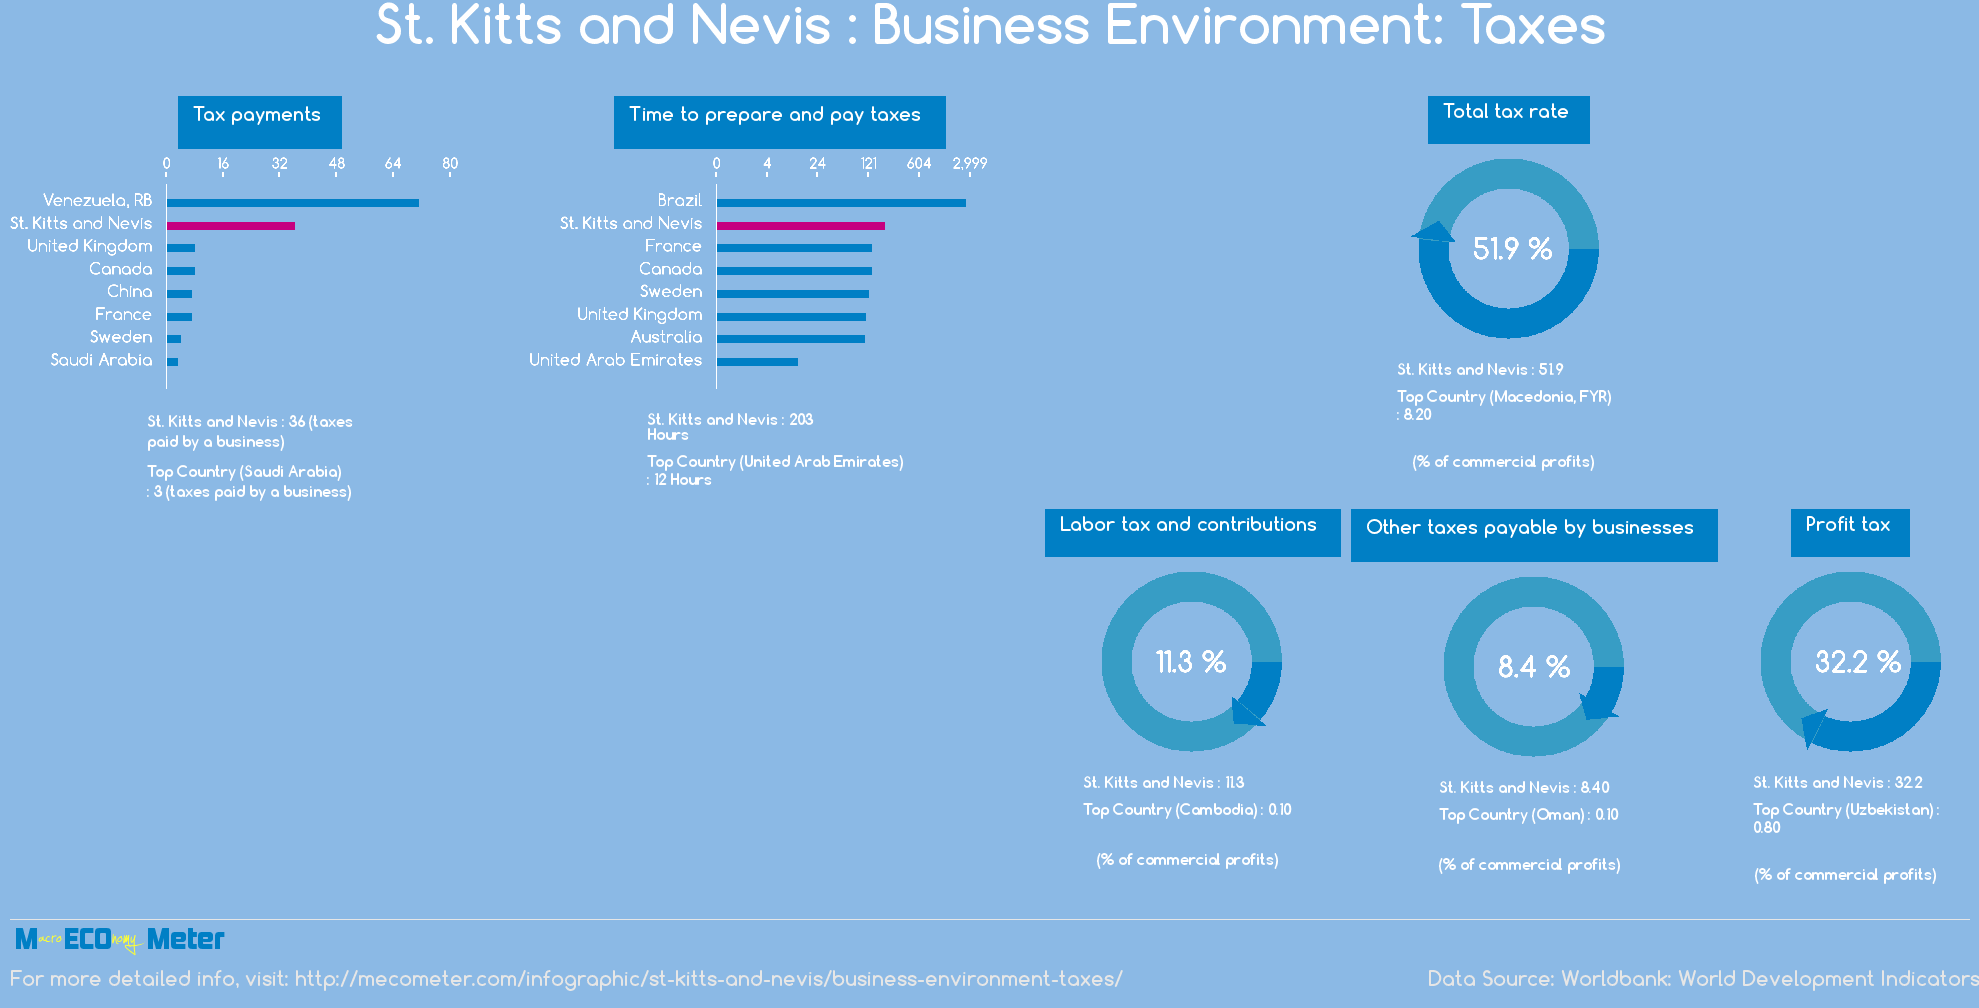 St. Kitts and Nevis : Business Environment: Taxes